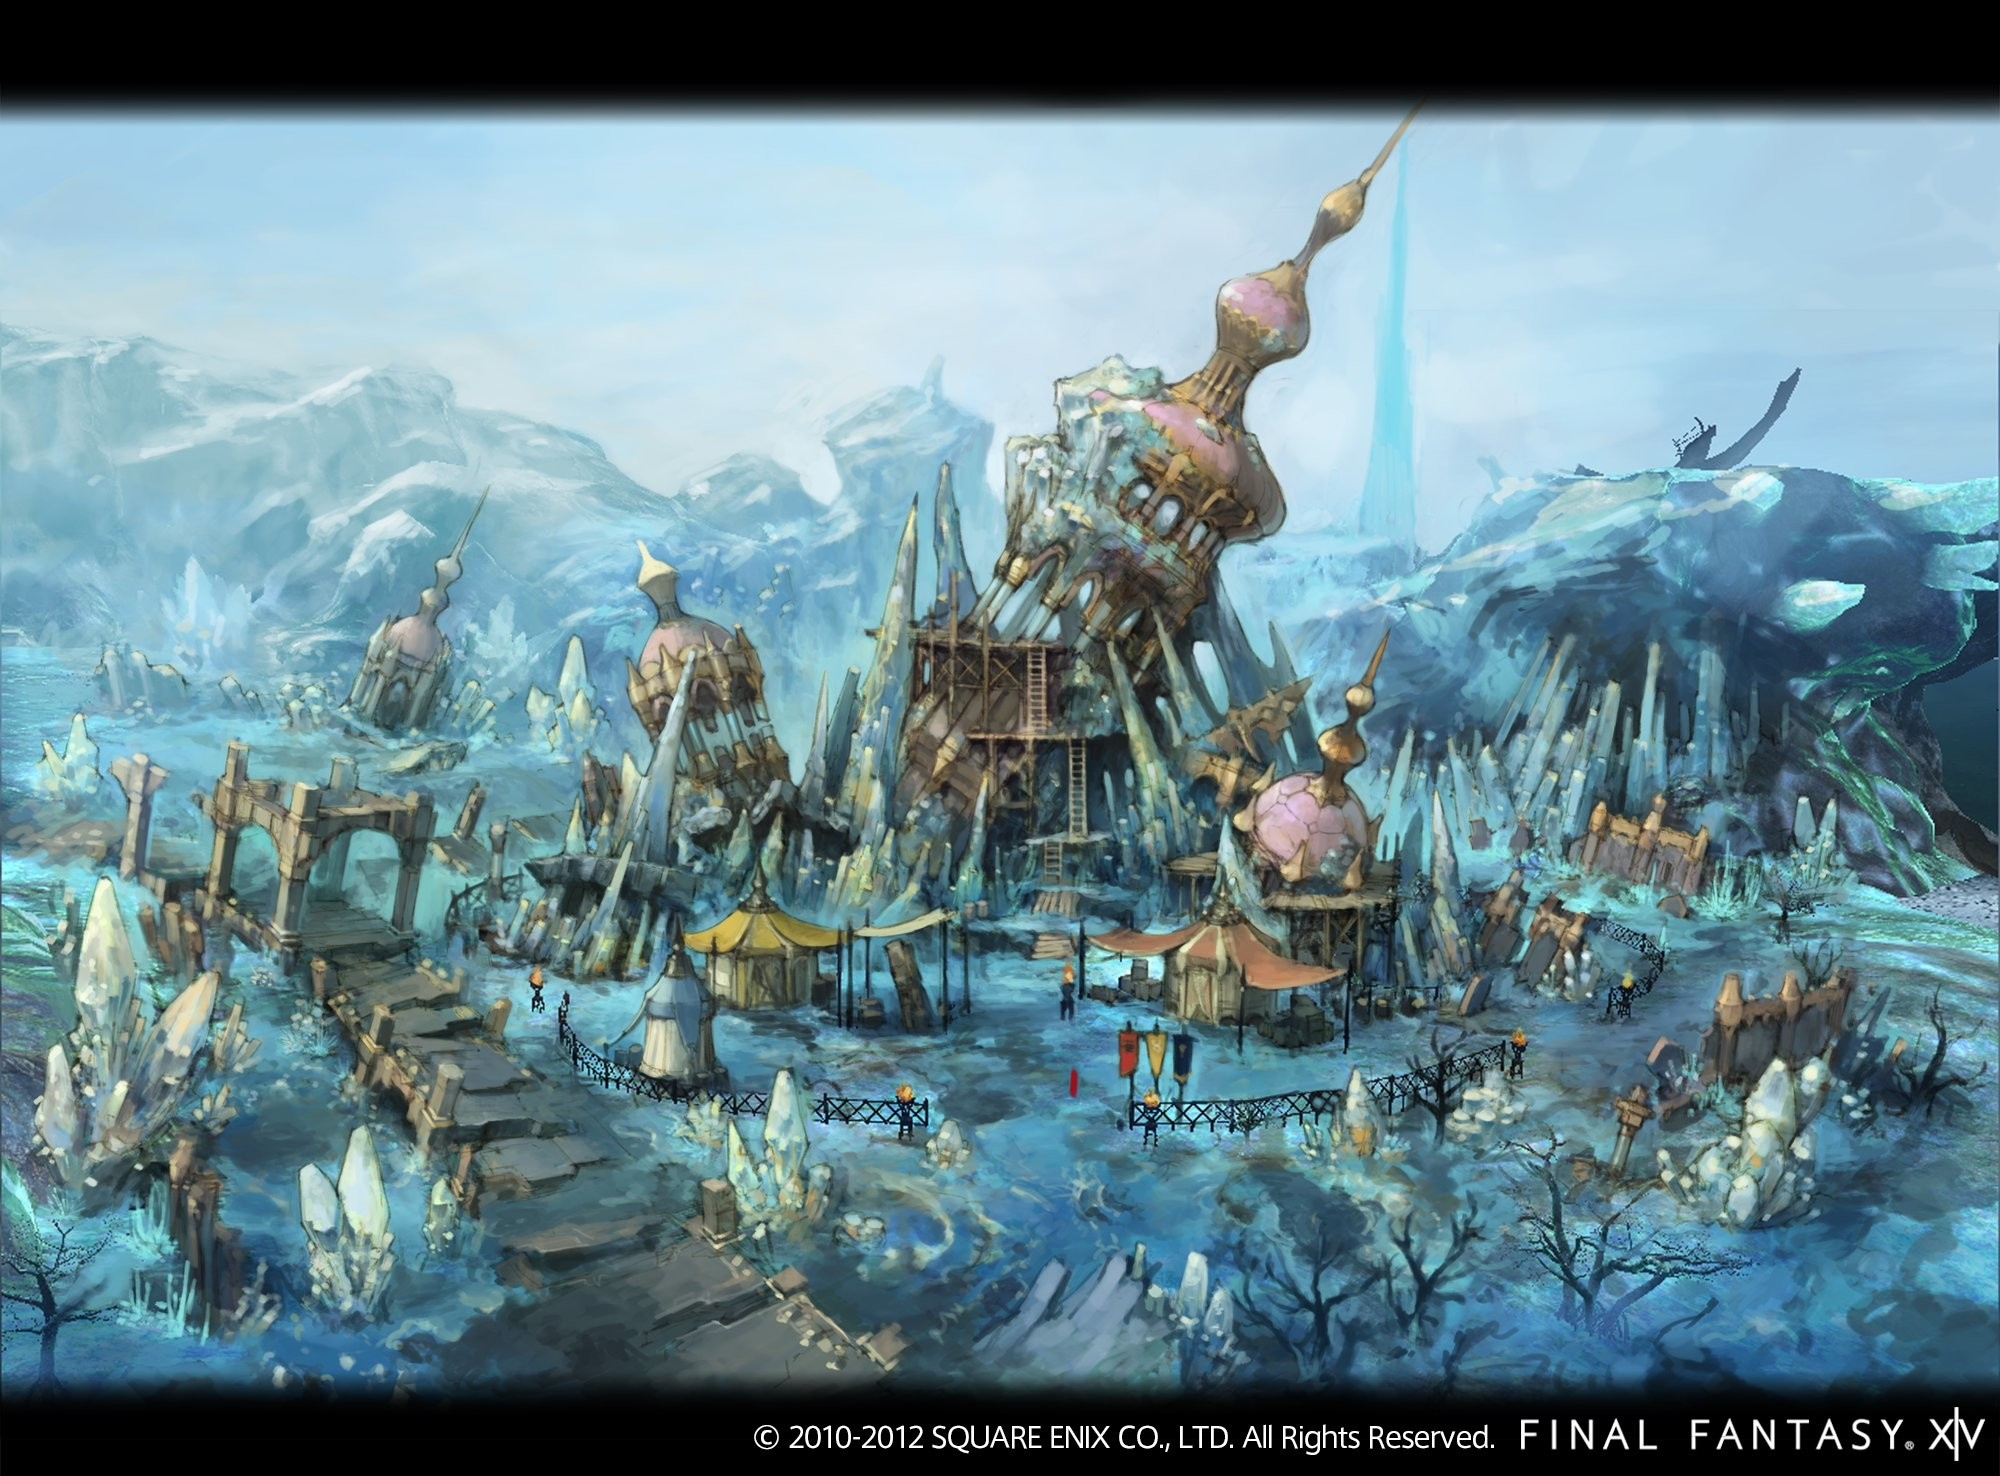 While those remind me of older FF games and even Chrono cross with the  frozen lake.